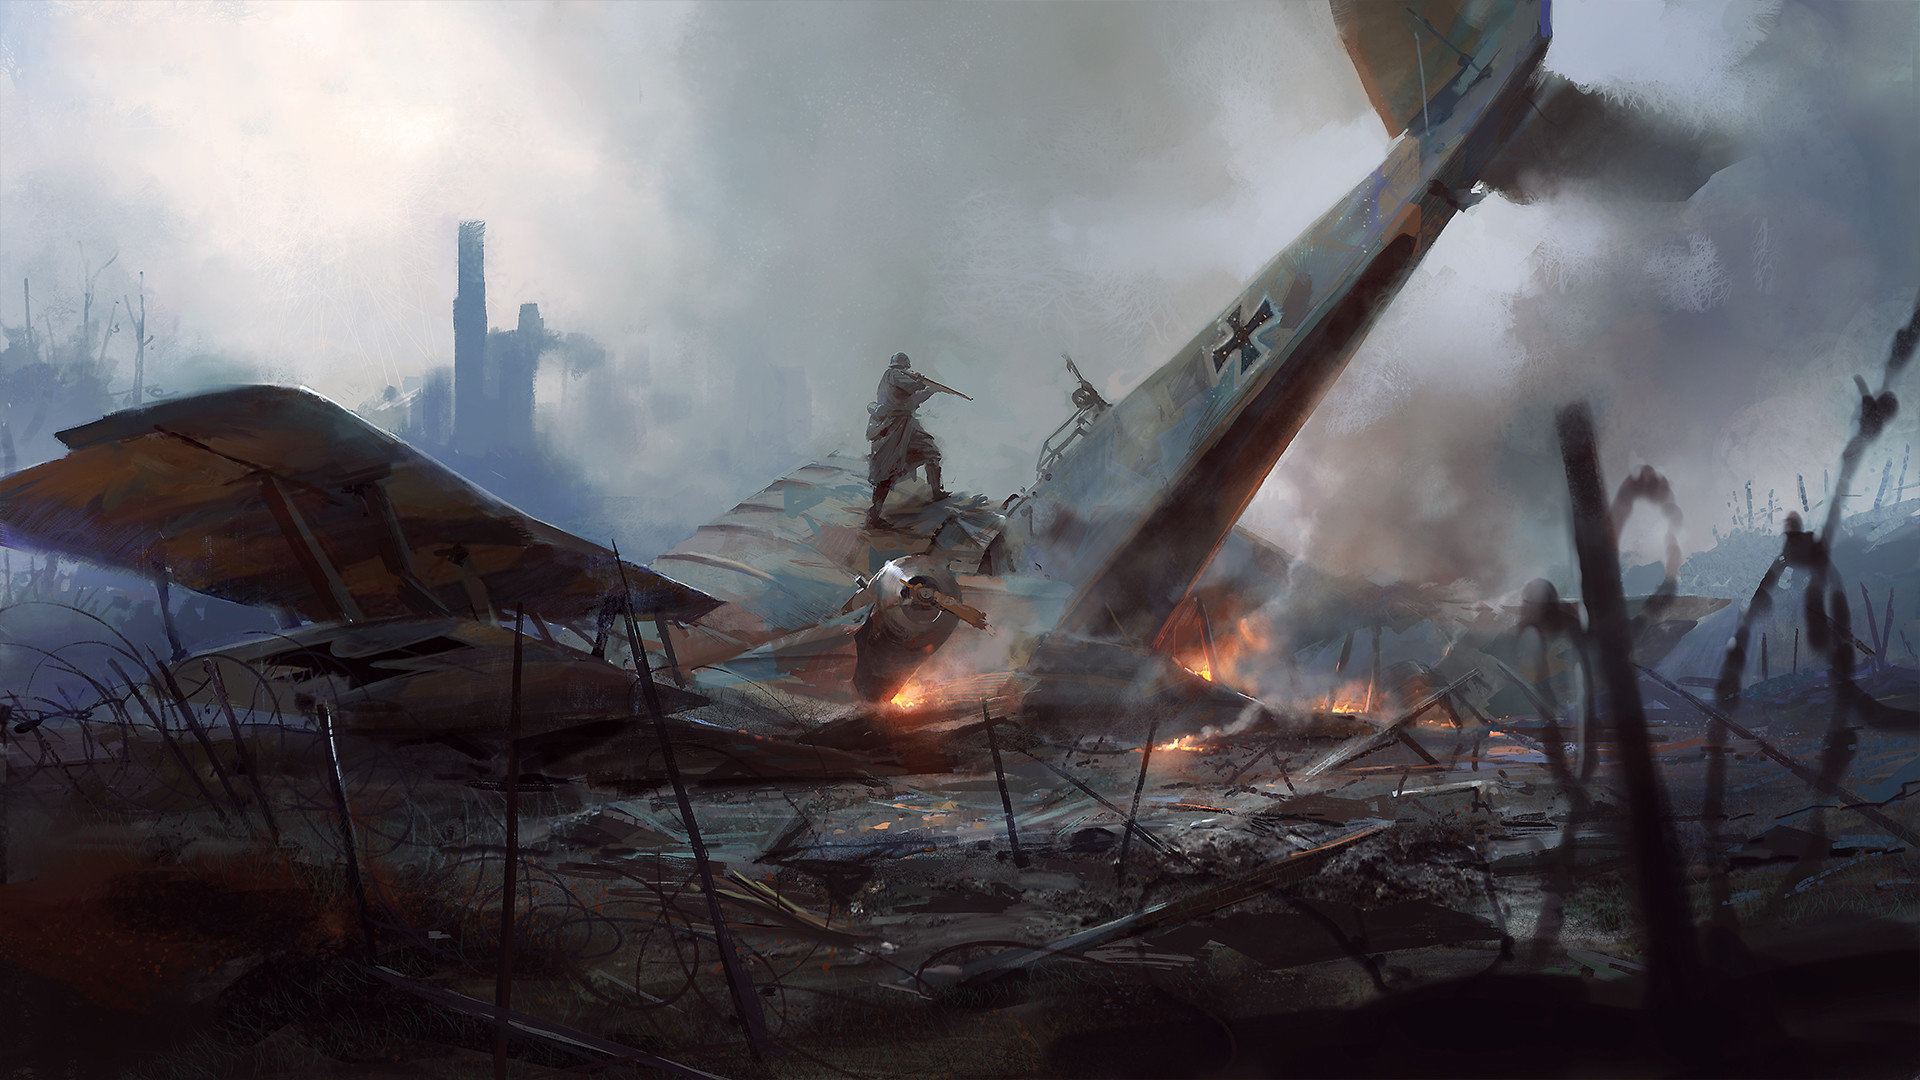 download full hd 1080p battlefield 1 pc wallpaper id:498049 for free